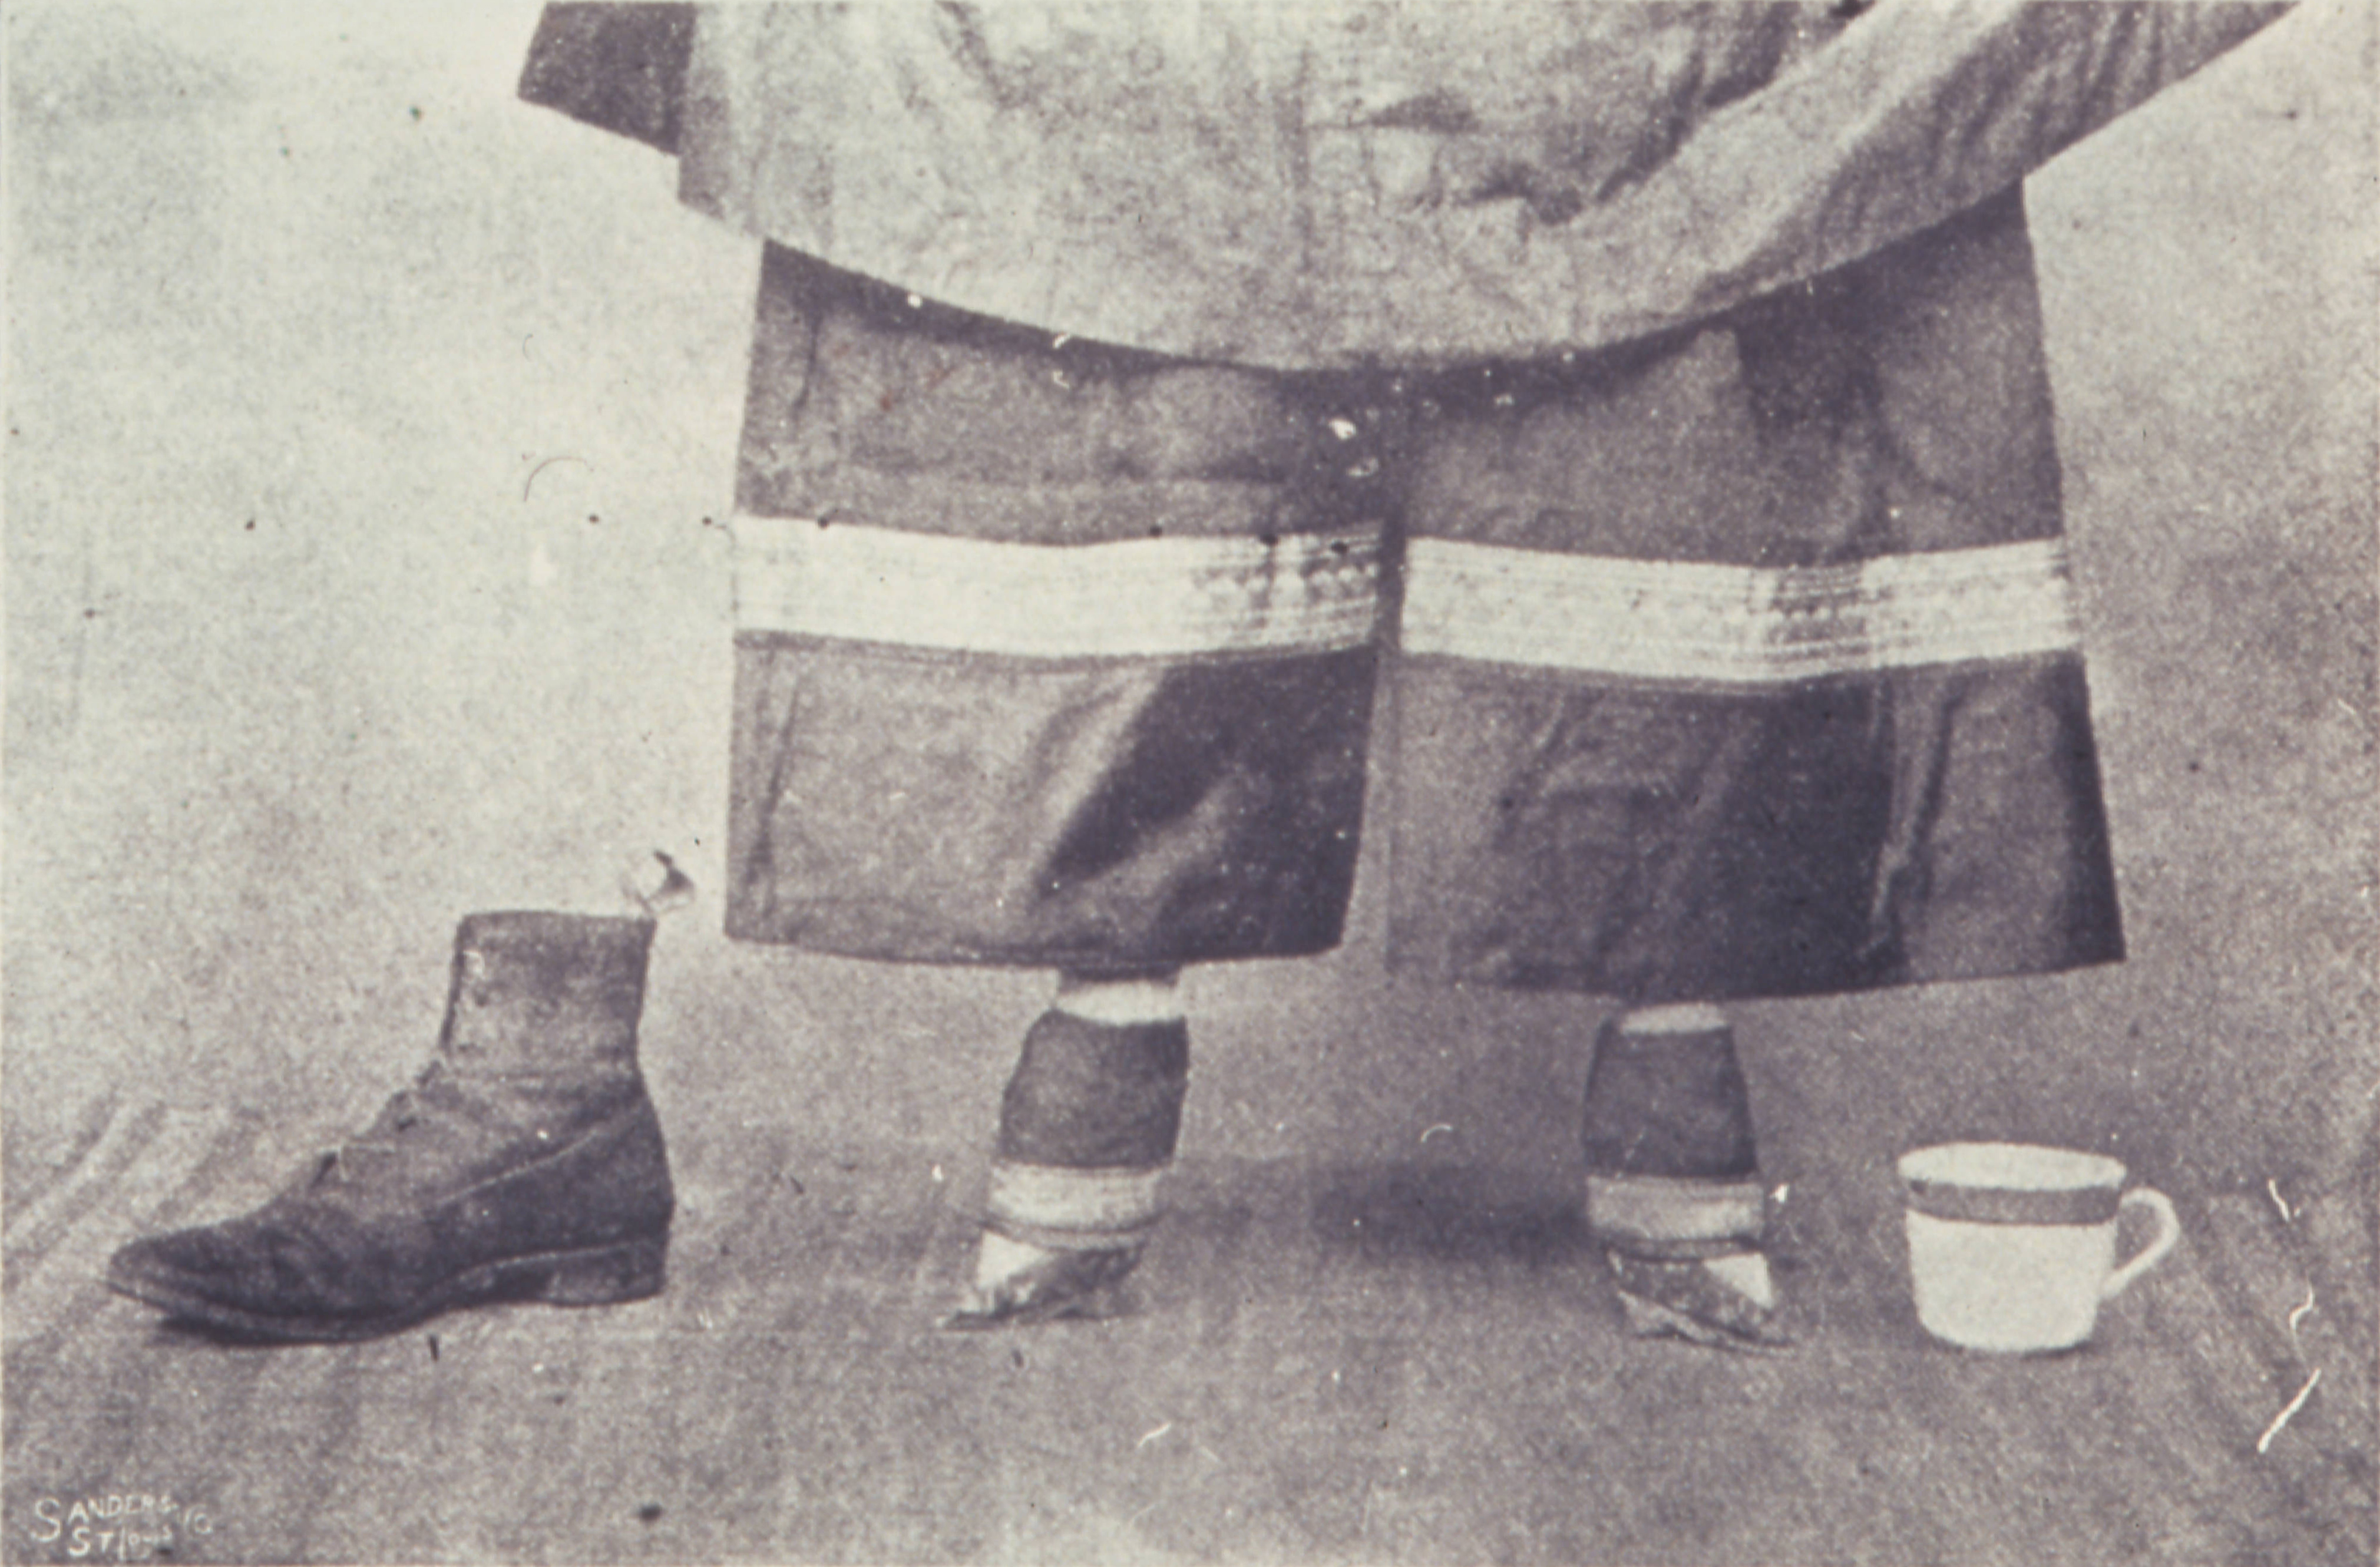 foot binding in china essay Foot binding or chanzu first became widespread during the sung dynasty of china (960-976 bc)  at first, this was limited to the elite upper classes, but it soon spread to the middle and lower classes in the manner of other fads.